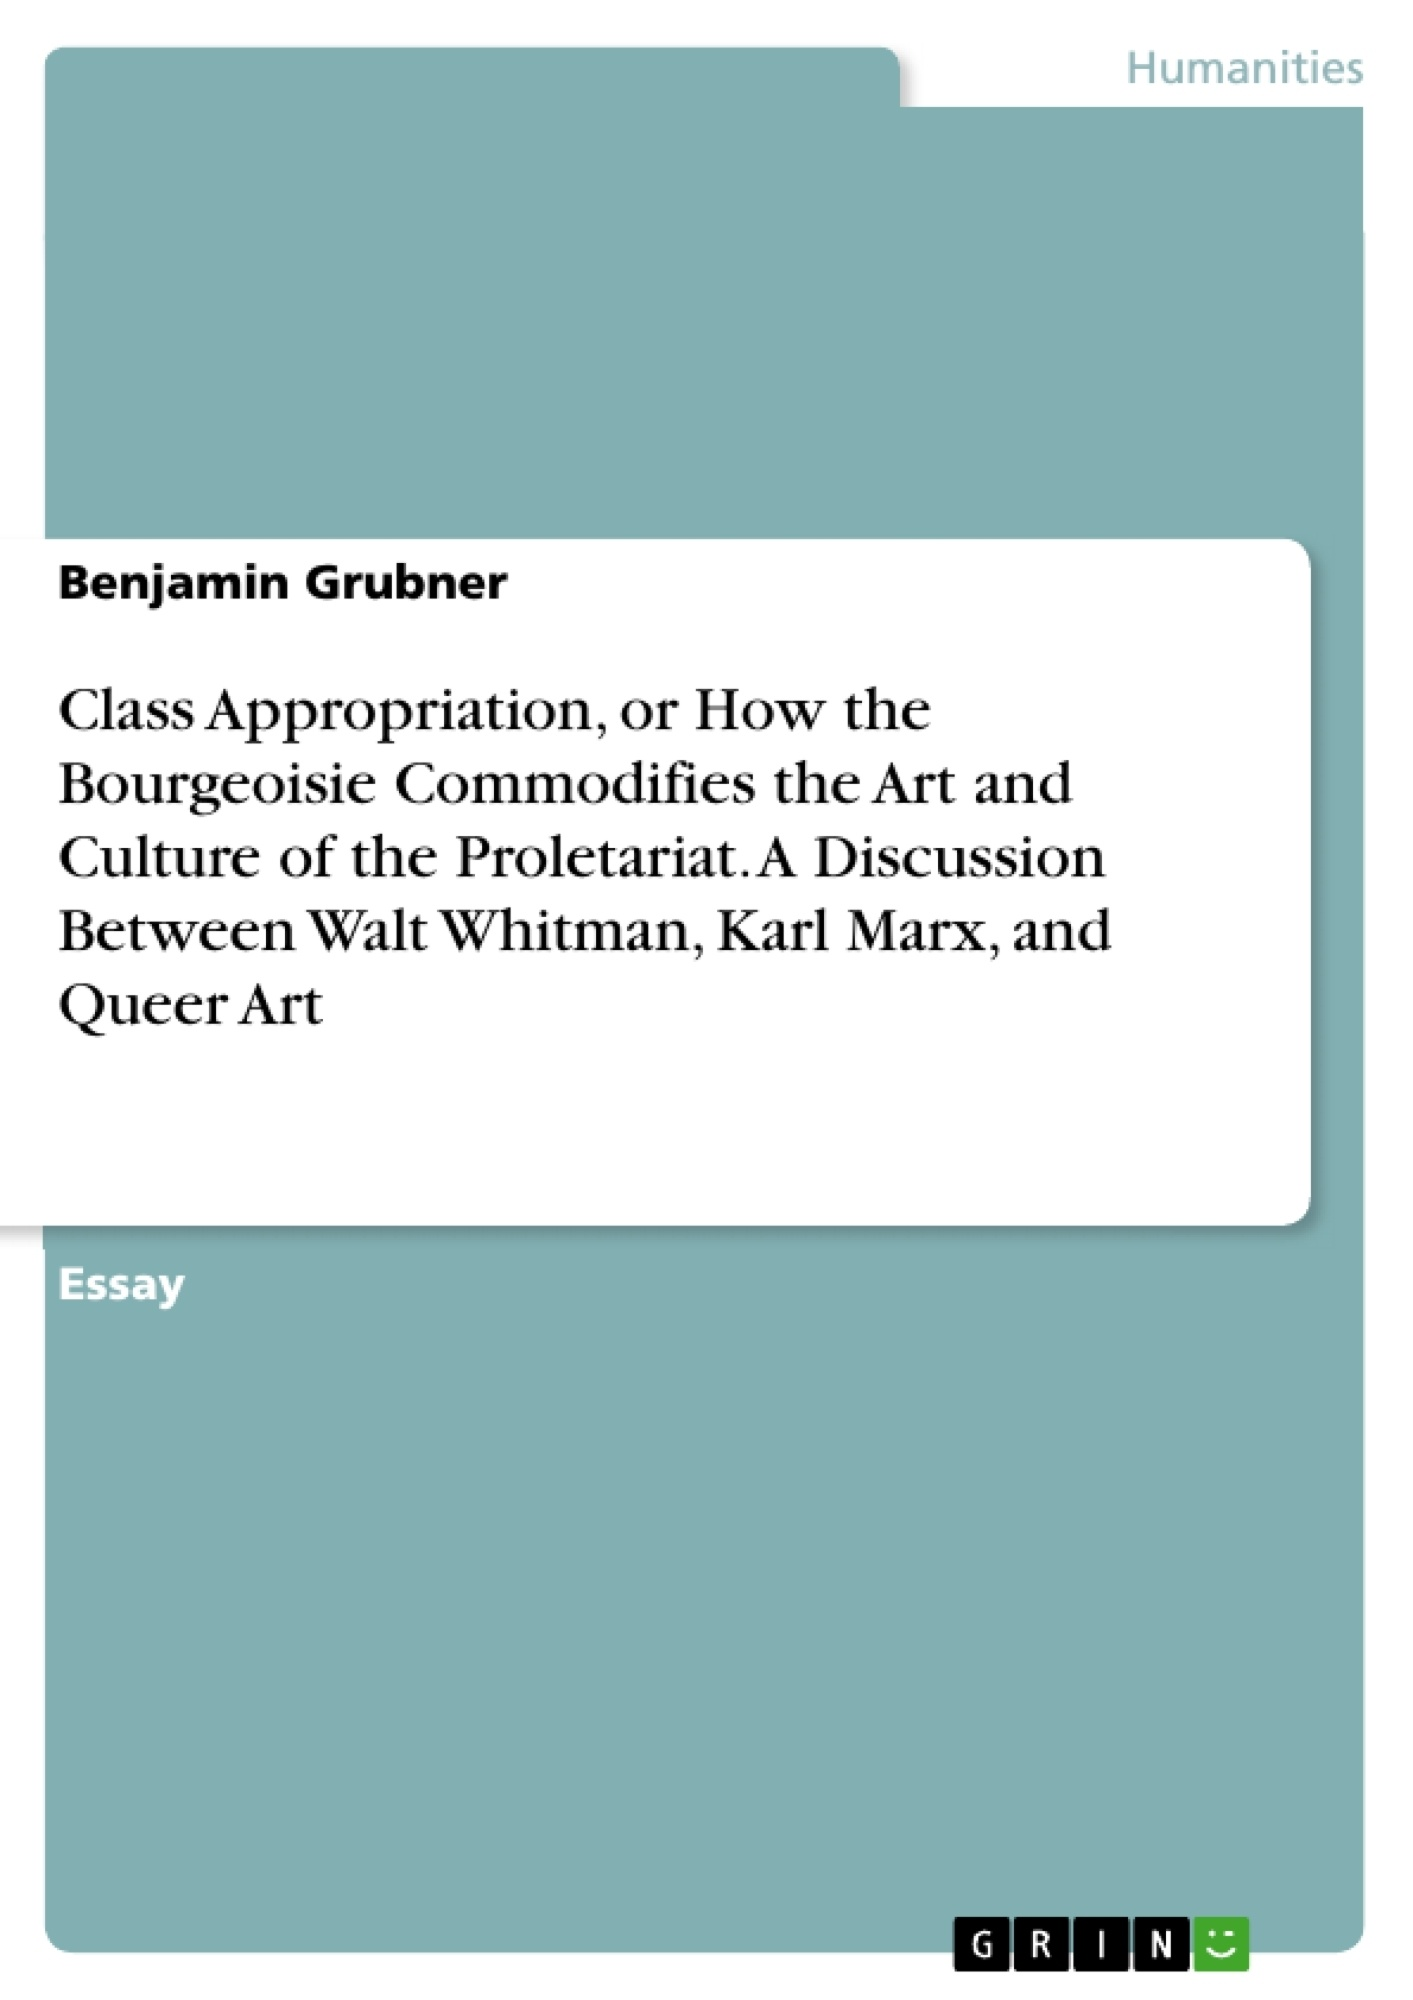 Title: Class Appropriation, or How the Bourgeoisie Commodifies the Art and Culture of the Proletariat. A Discussion Between Walt Whitman, Karl Marx, and Queer Art